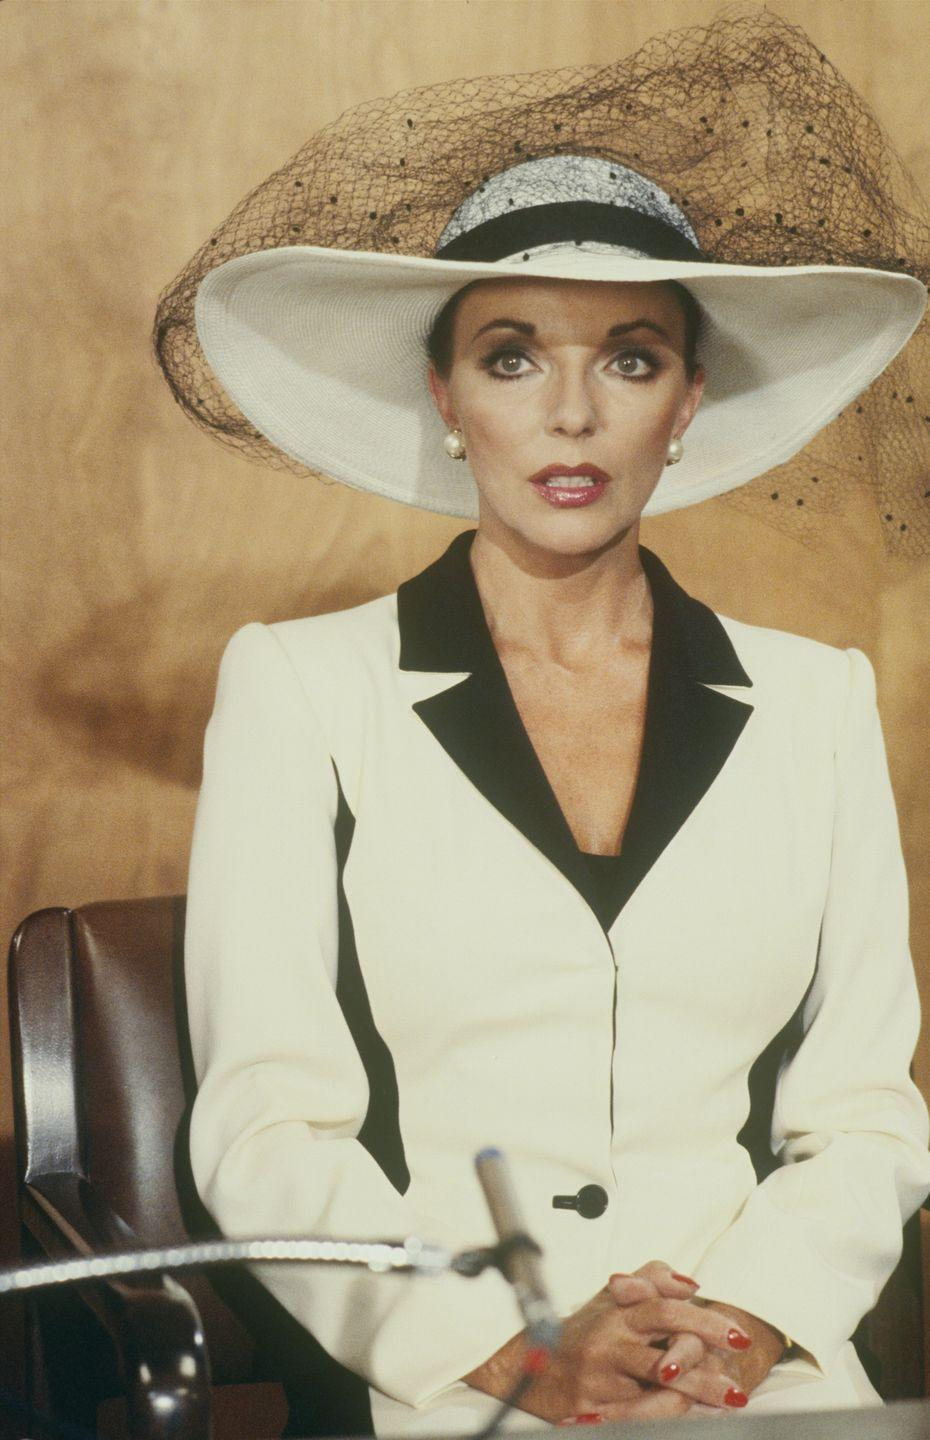 <p>Airing its first season in the fall of 1981, <em>Dynasty </em>star Joan Collins became an unintentional fashion icon. Her character, Alexis Carrington, helped inspire higher shoulder pads, bolder accessories, and more glamour in the average viewer's wardrobe.</p>